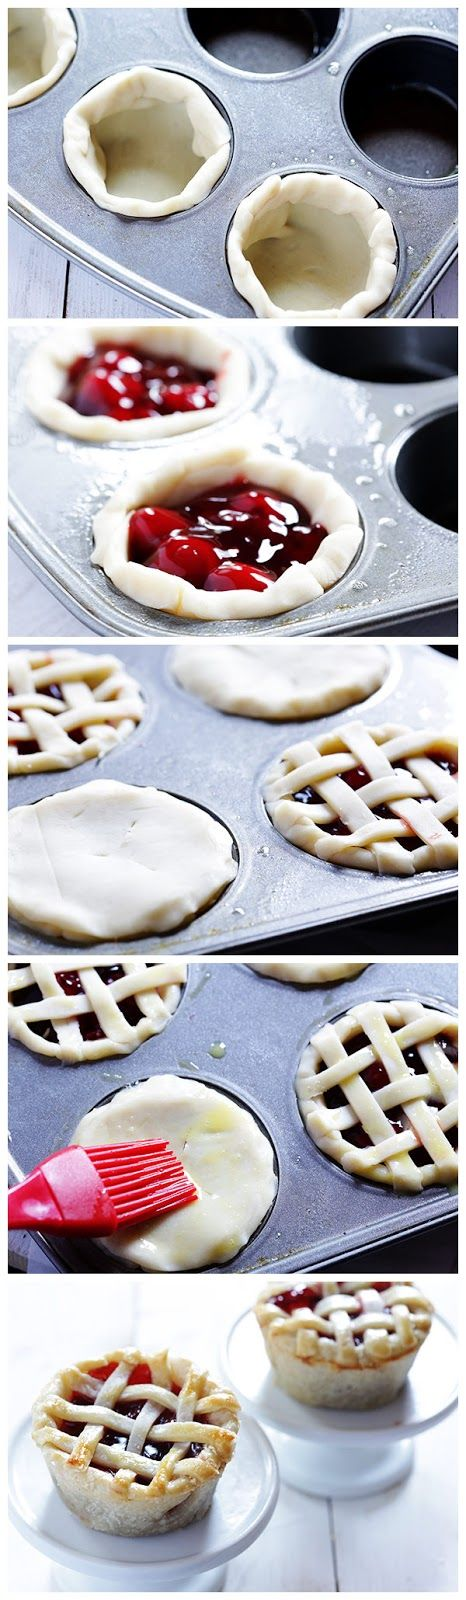 How to Make Mini Pies in a Cupcake Pan